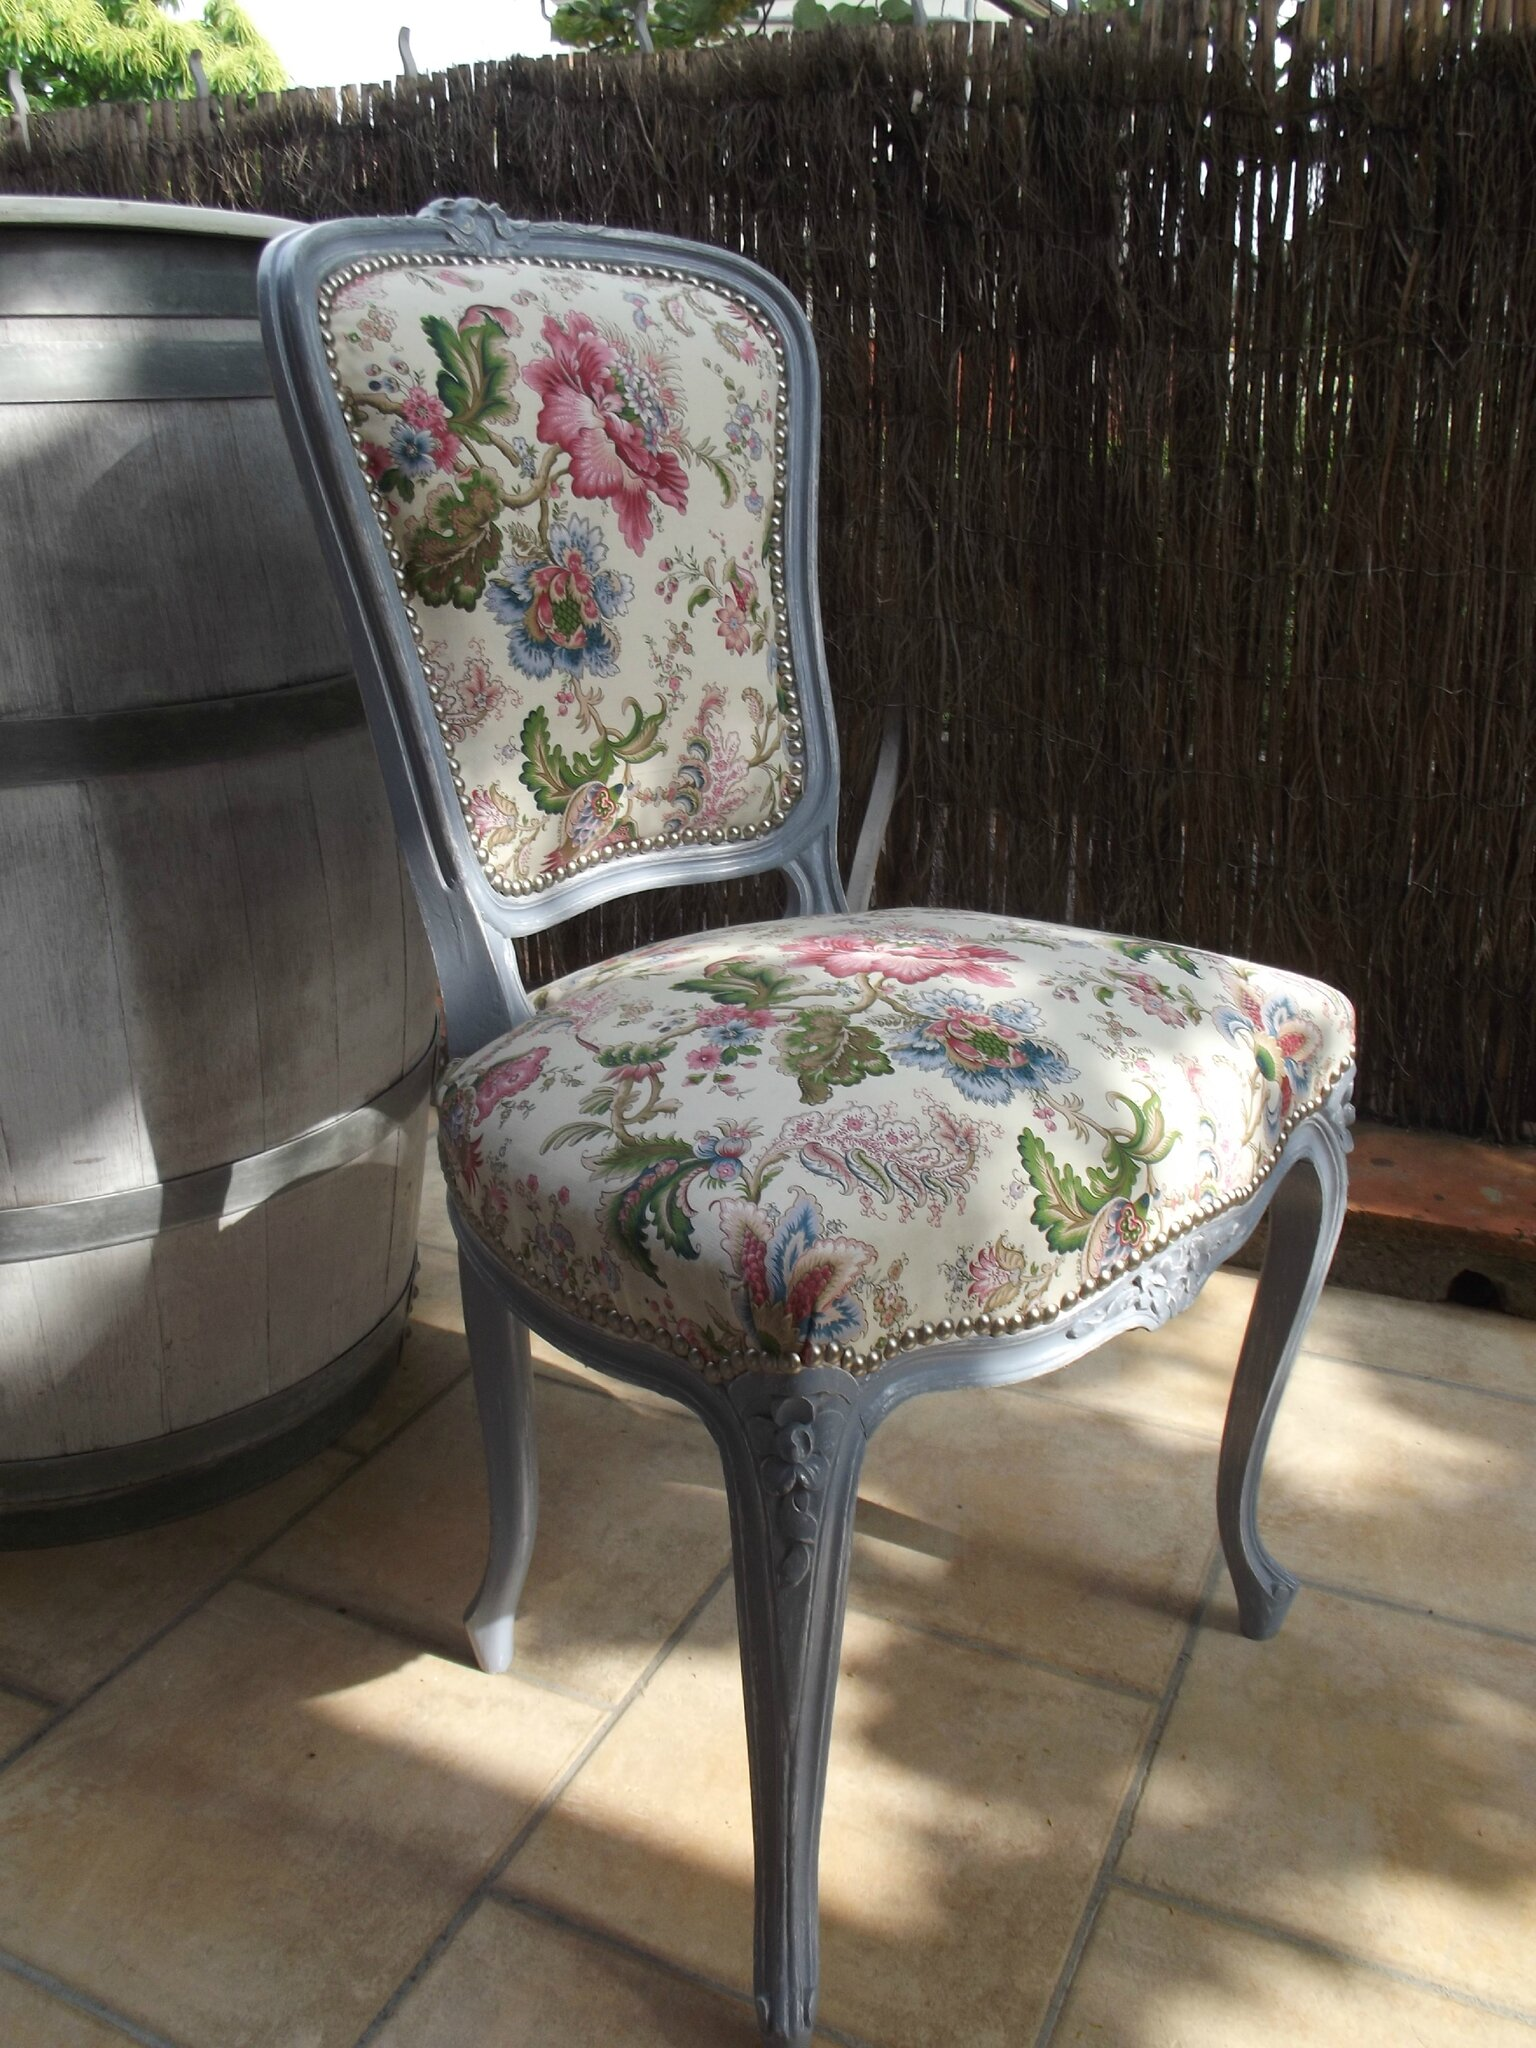 Chaise Fauteuil De Table Chaise Louis Xv Relookée - Patine-deco